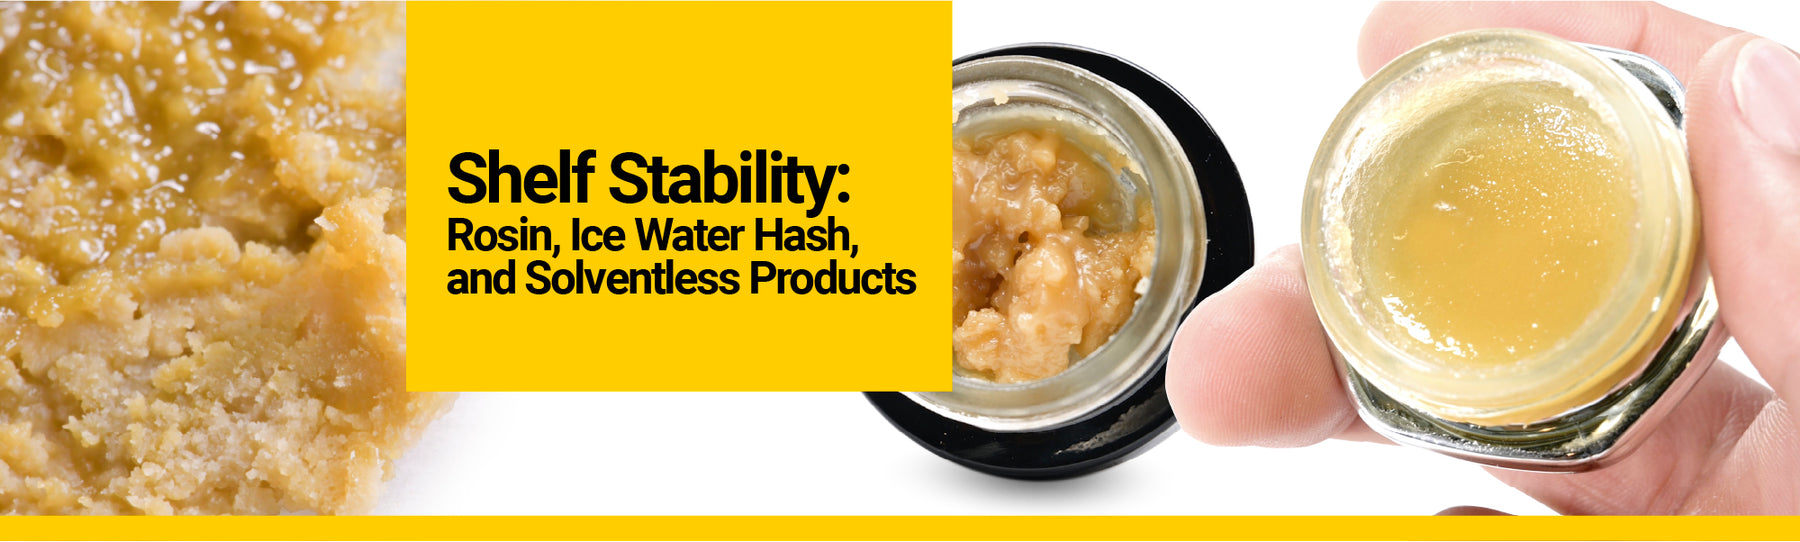 Shelf Stability: Rosin, Ice Water Hash, and Solventless Products